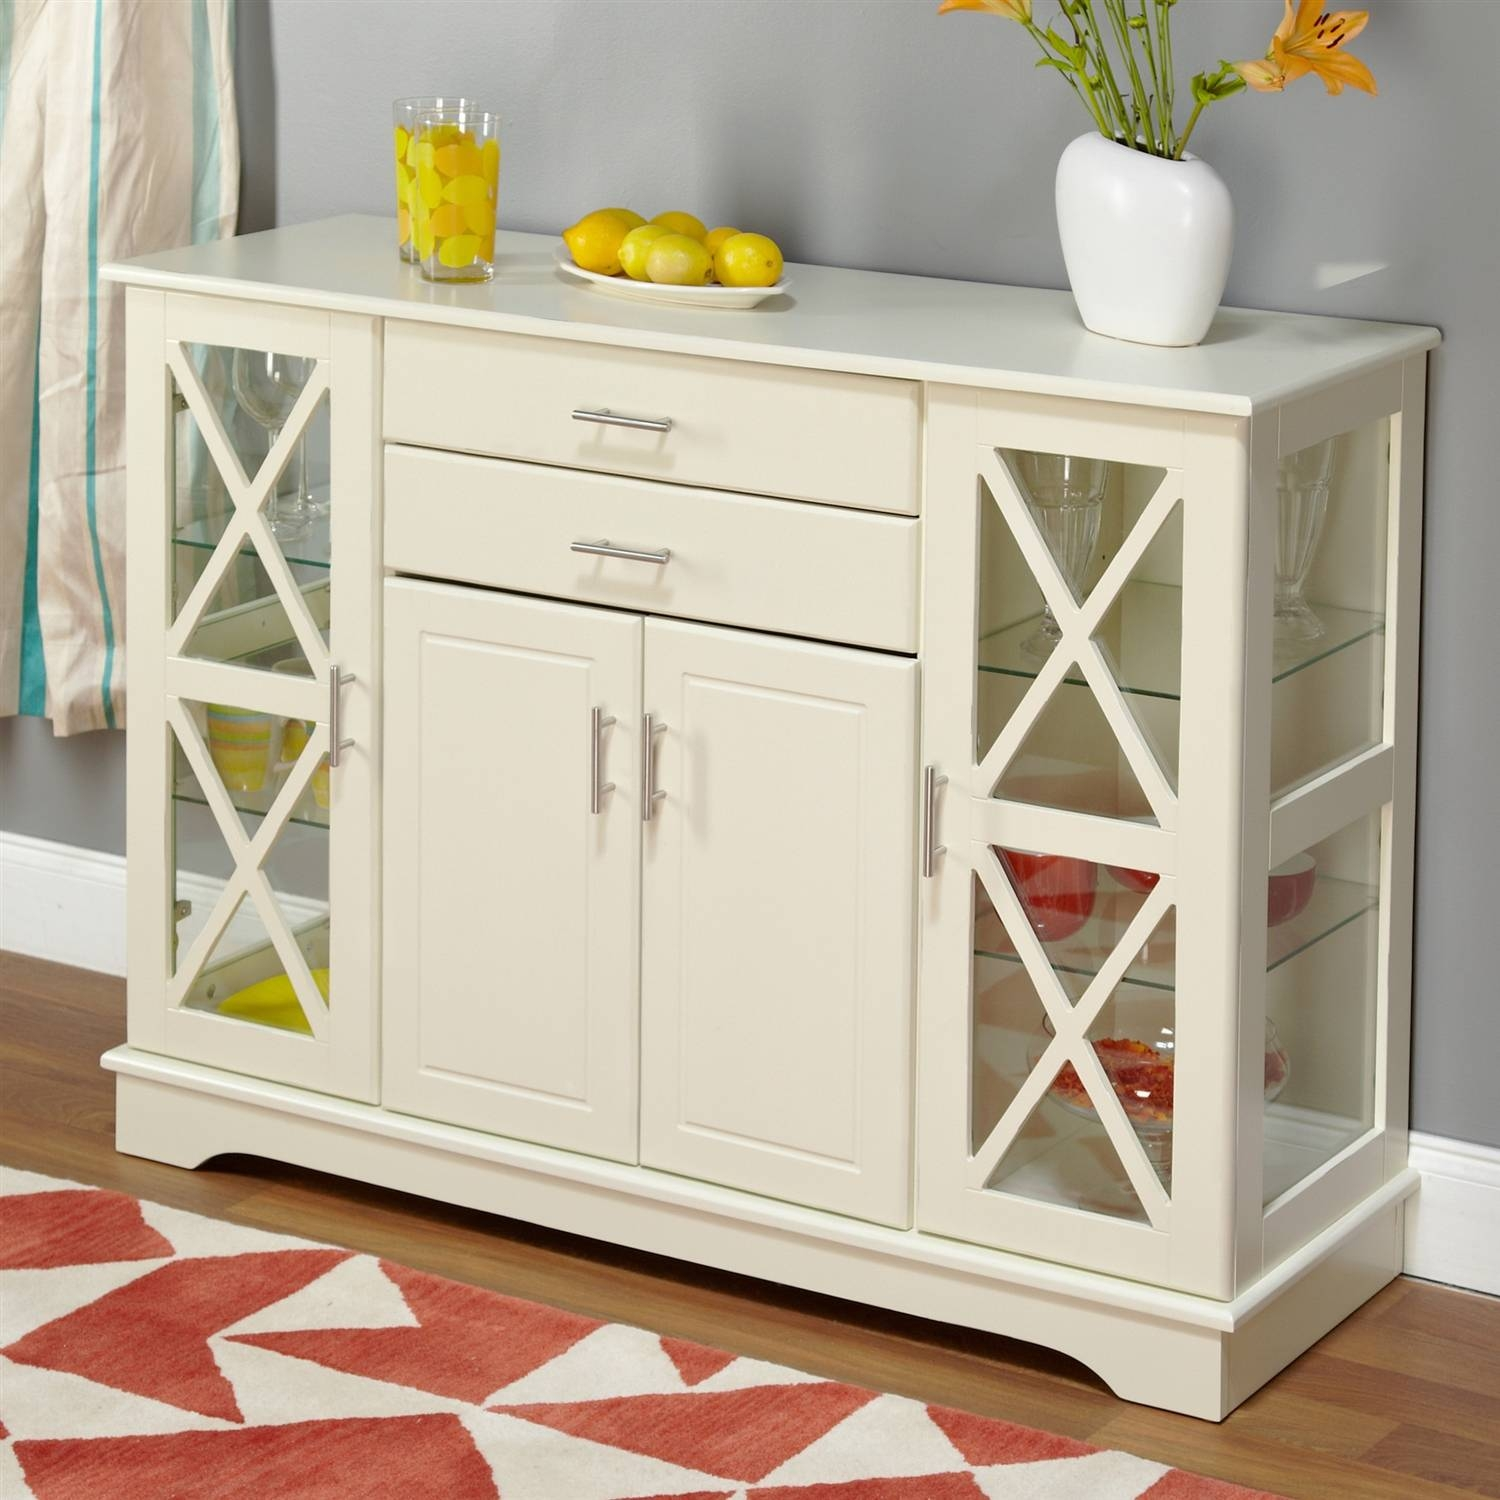 Sideboards & Buffets Inside Most Up To Date Sideboards With Glass Doors And Drawers (#9 of 15)